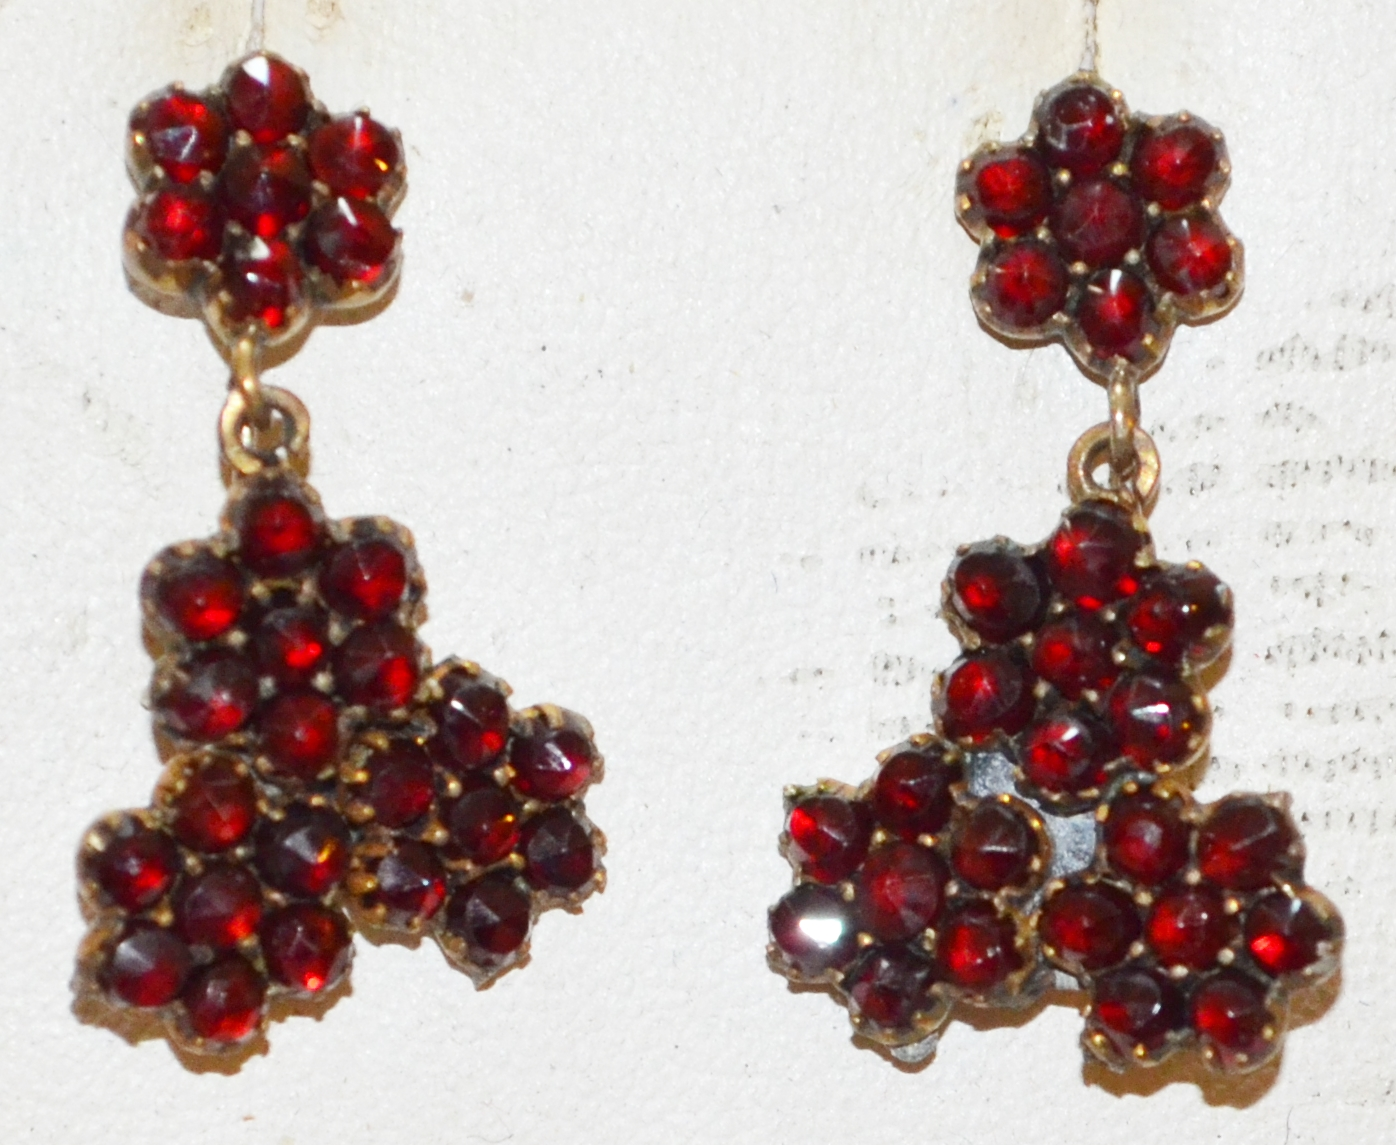 ANTIQUE GARNET EARRINGS